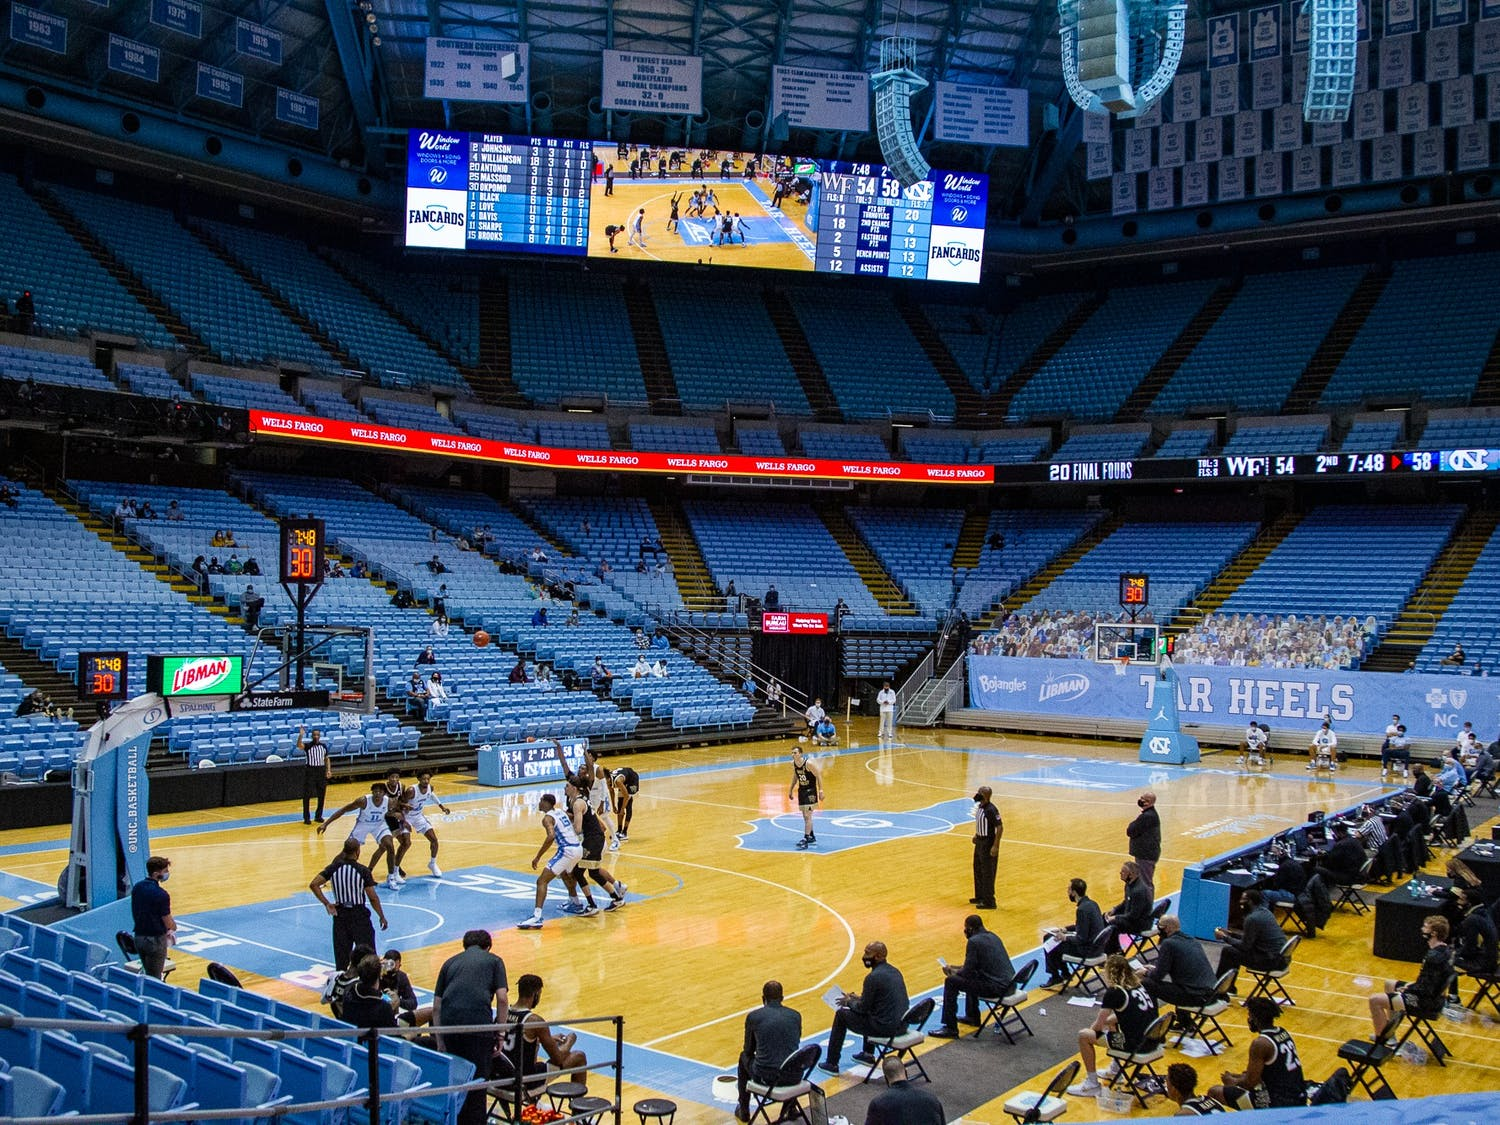 Wake Forest takes a free throw in the Dean Smith Center Jan. 20, 2021. The Tar Heels beat the Demon Deacons 80-73.